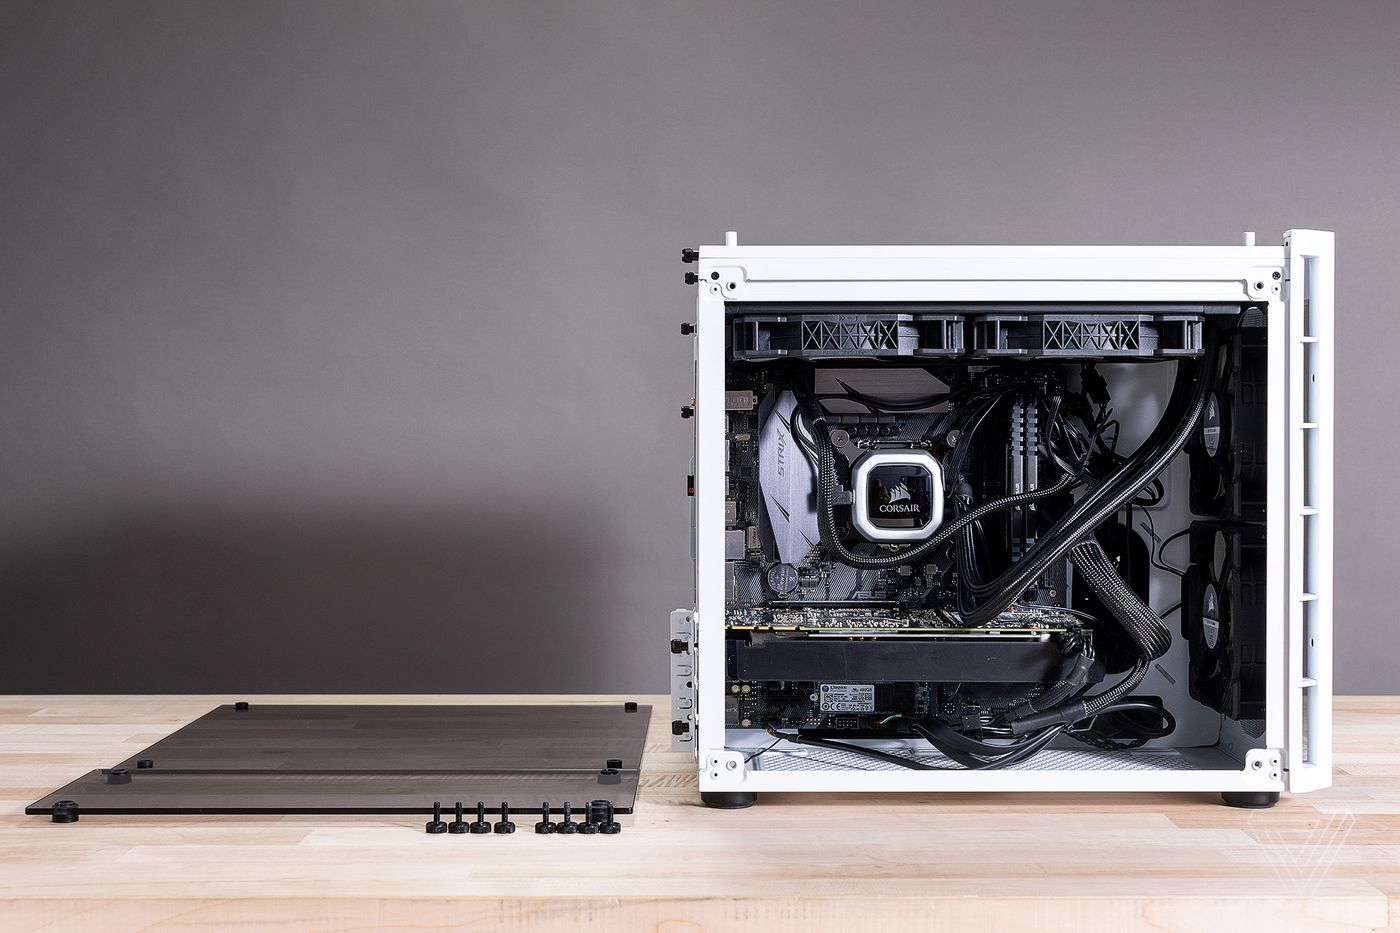 How to build a custom PC for gaming, editing or coding - The